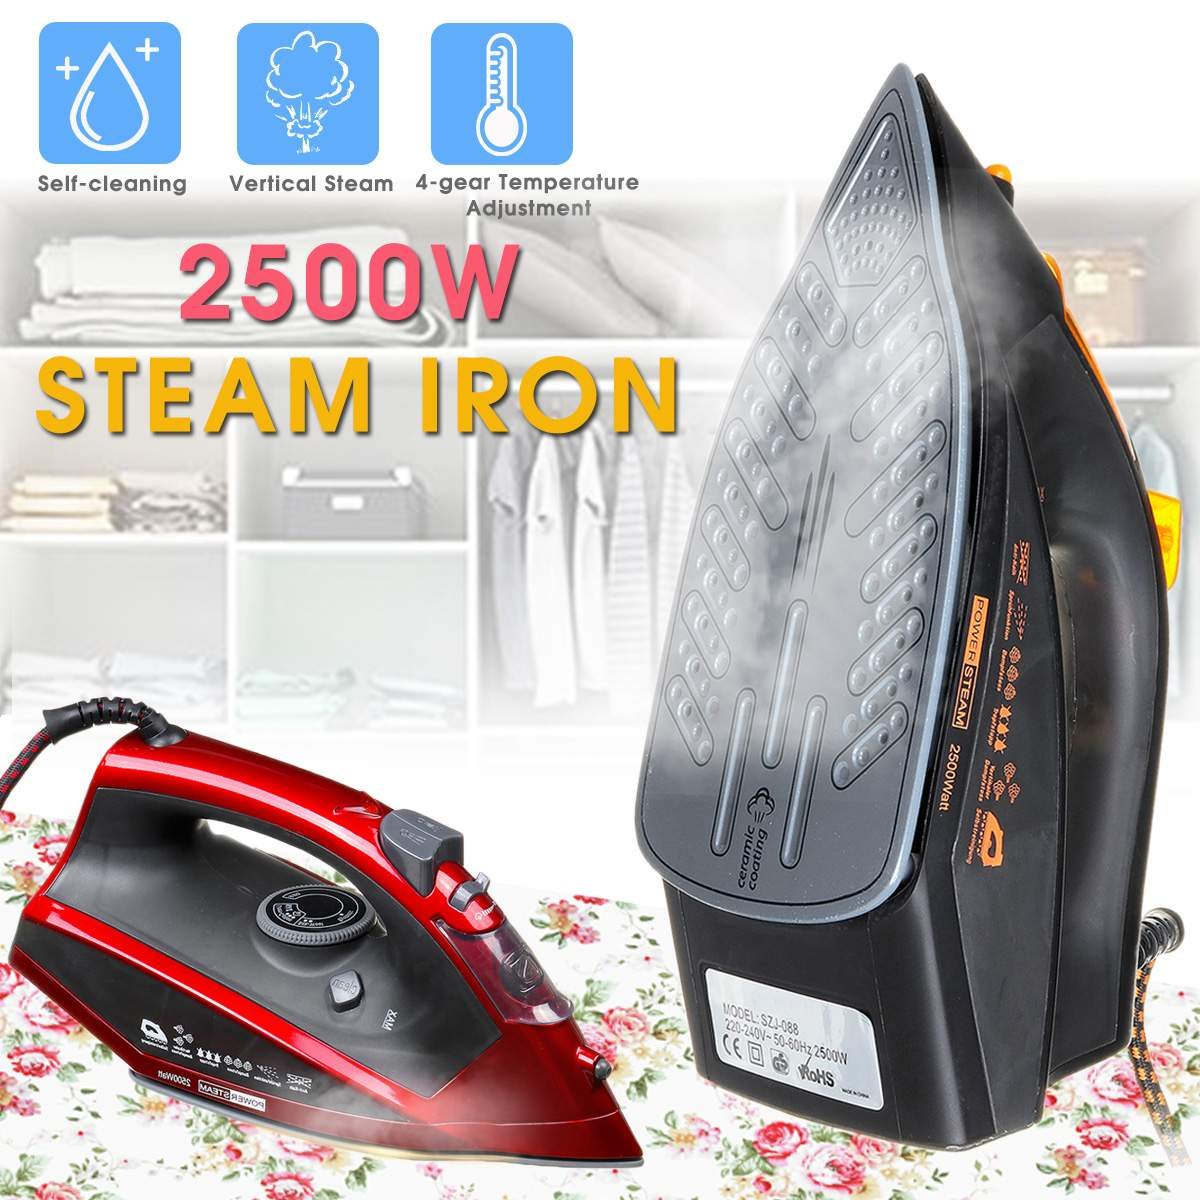 2500W Steam Iron For Clothes 350ml 4 Level Adjustable Vertical Electric Irons Self-Cleaning Travel Portable Ironing Steamer